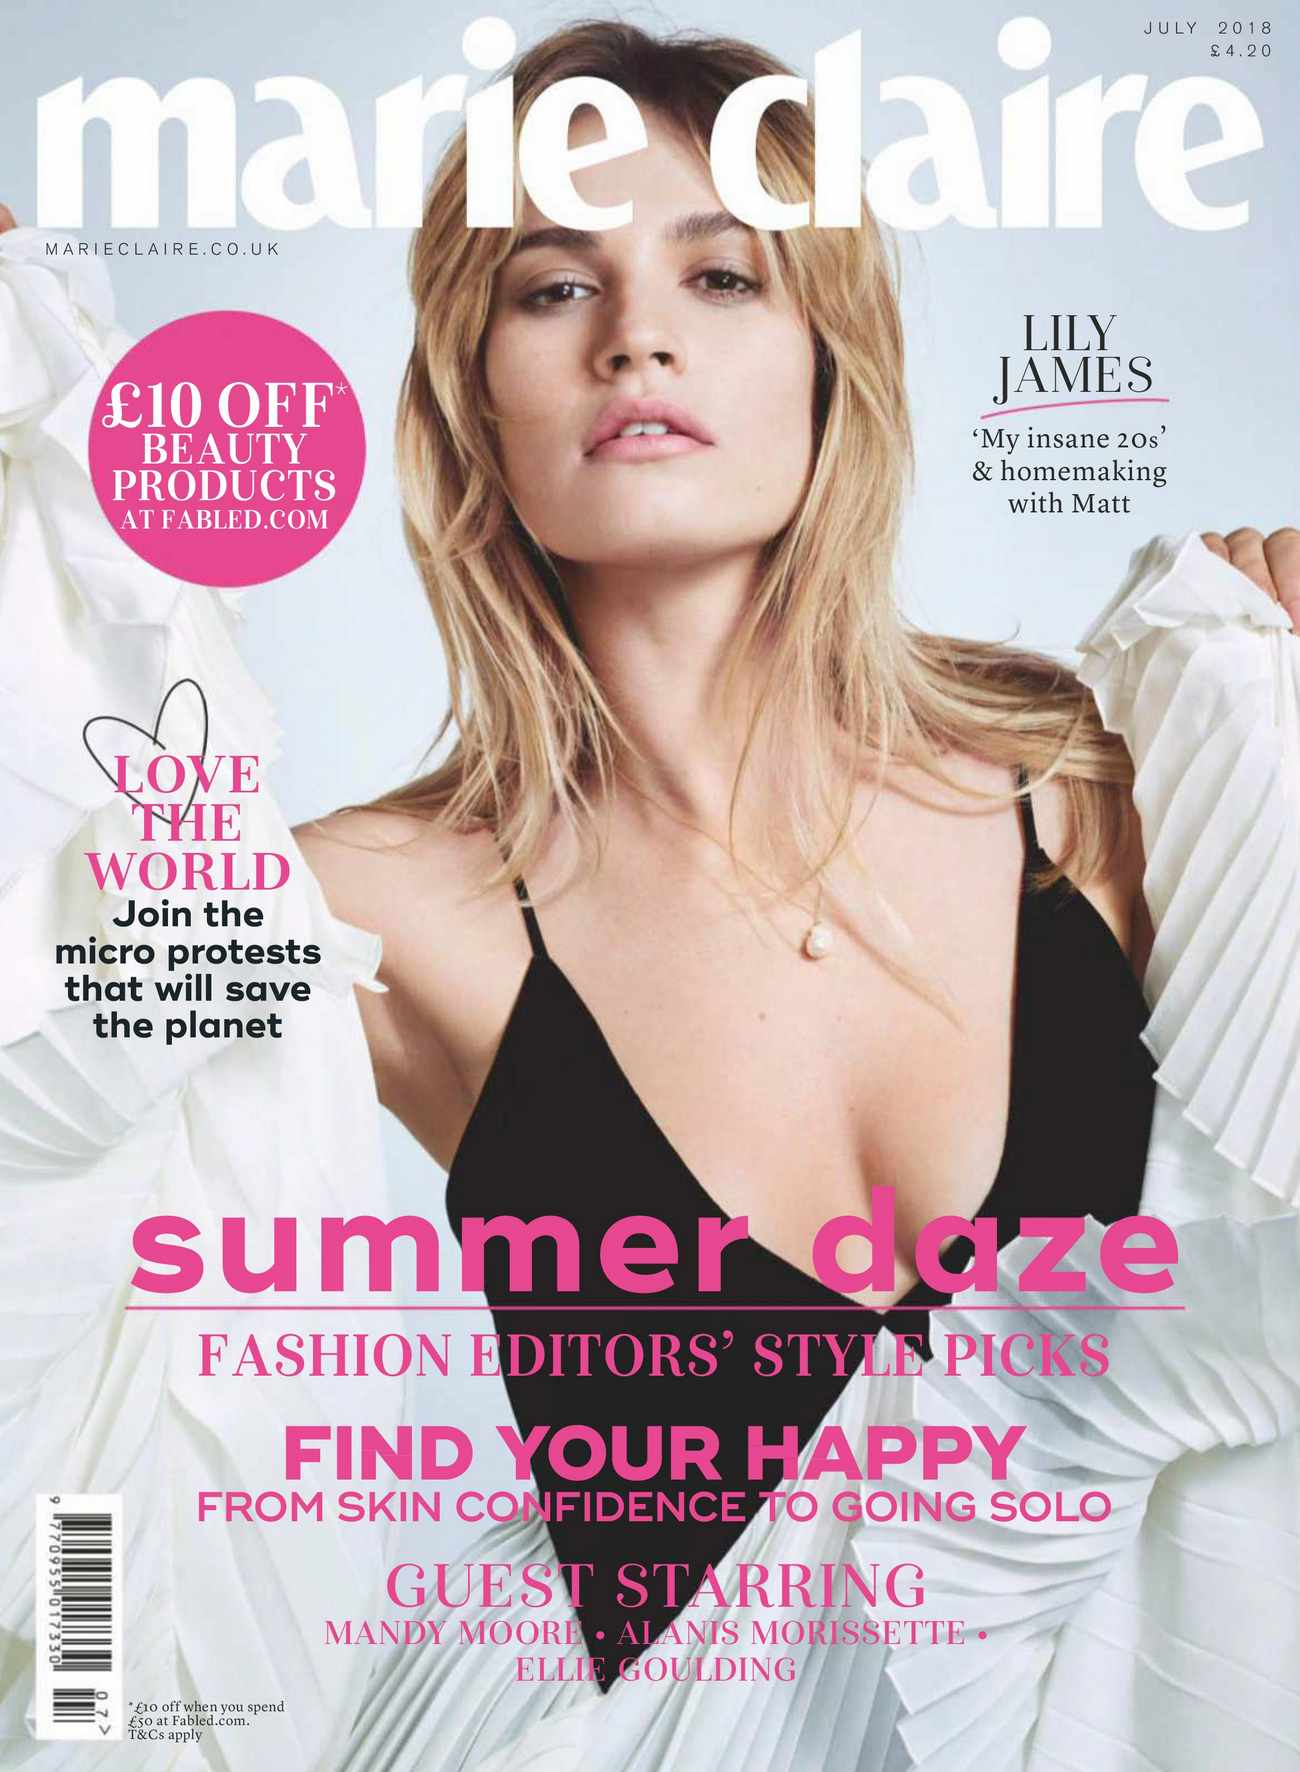 Lily-James-Marie-Claire-UK-July-201800001.jpg